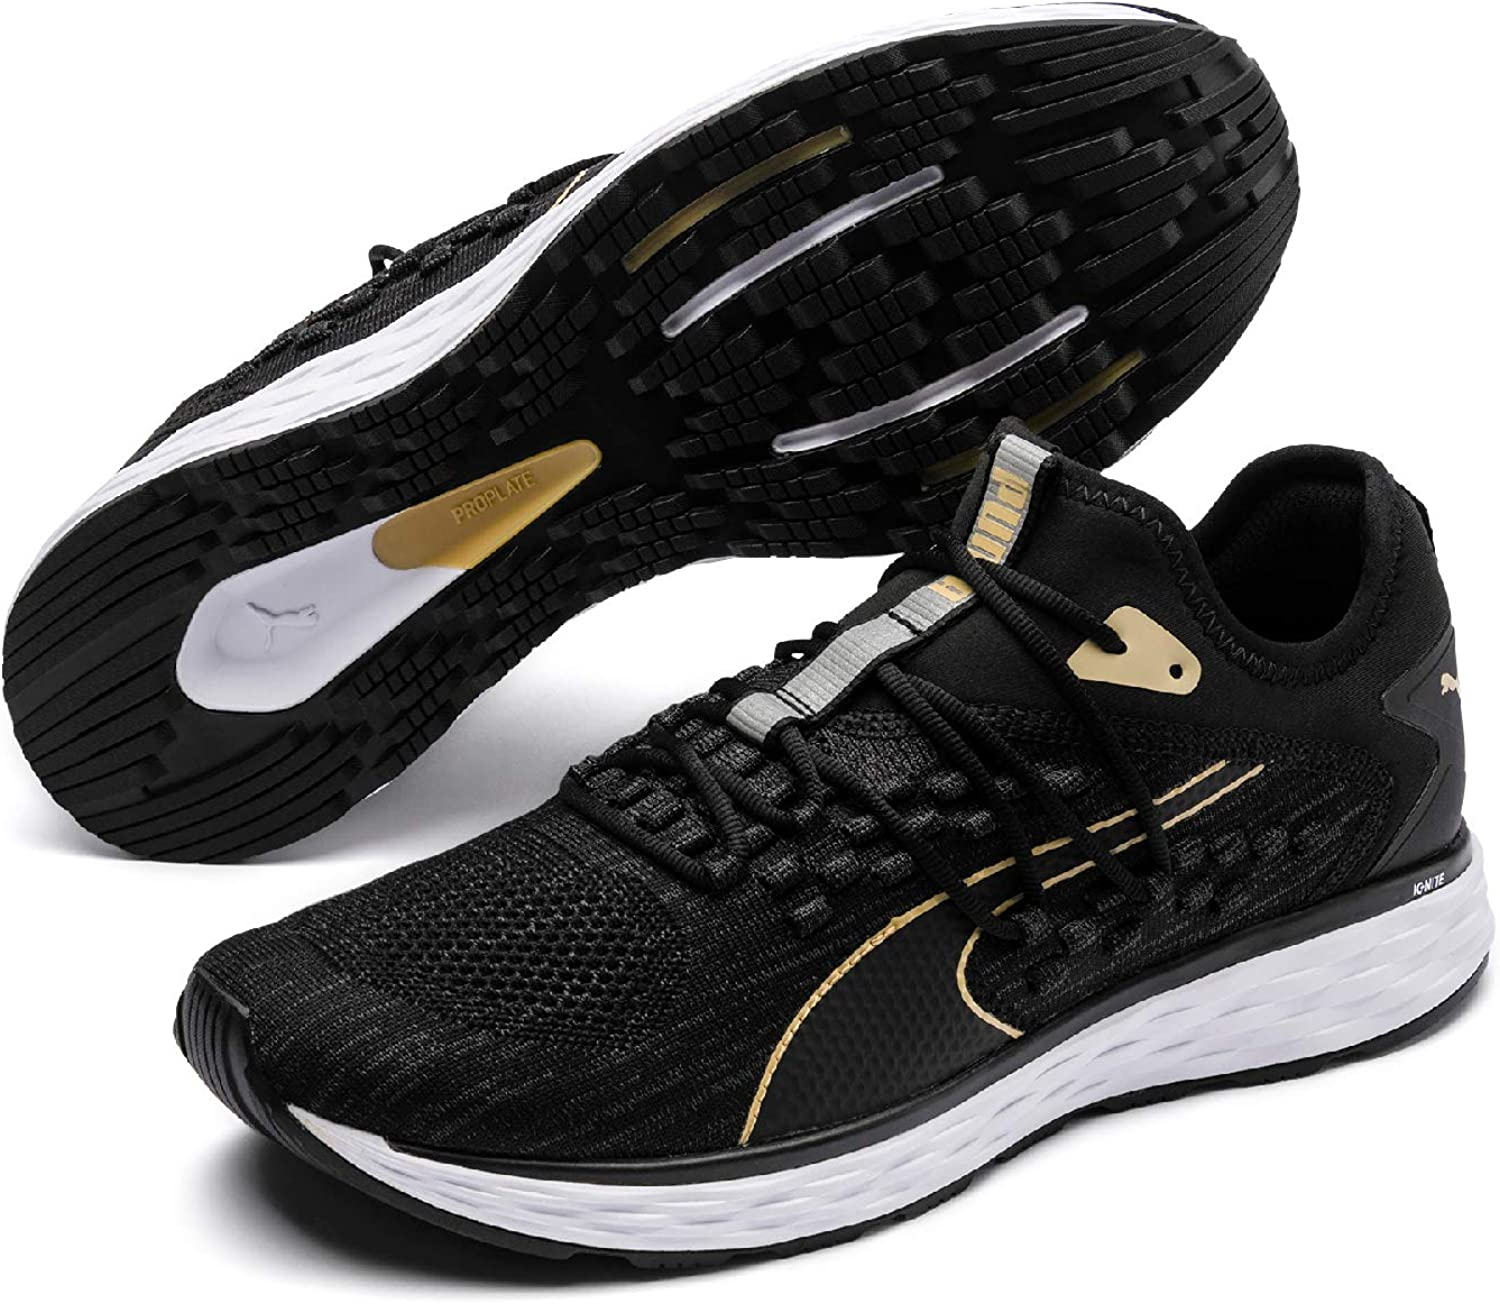 Puma Men's Speed 600 Fusefit Competition Running shoes